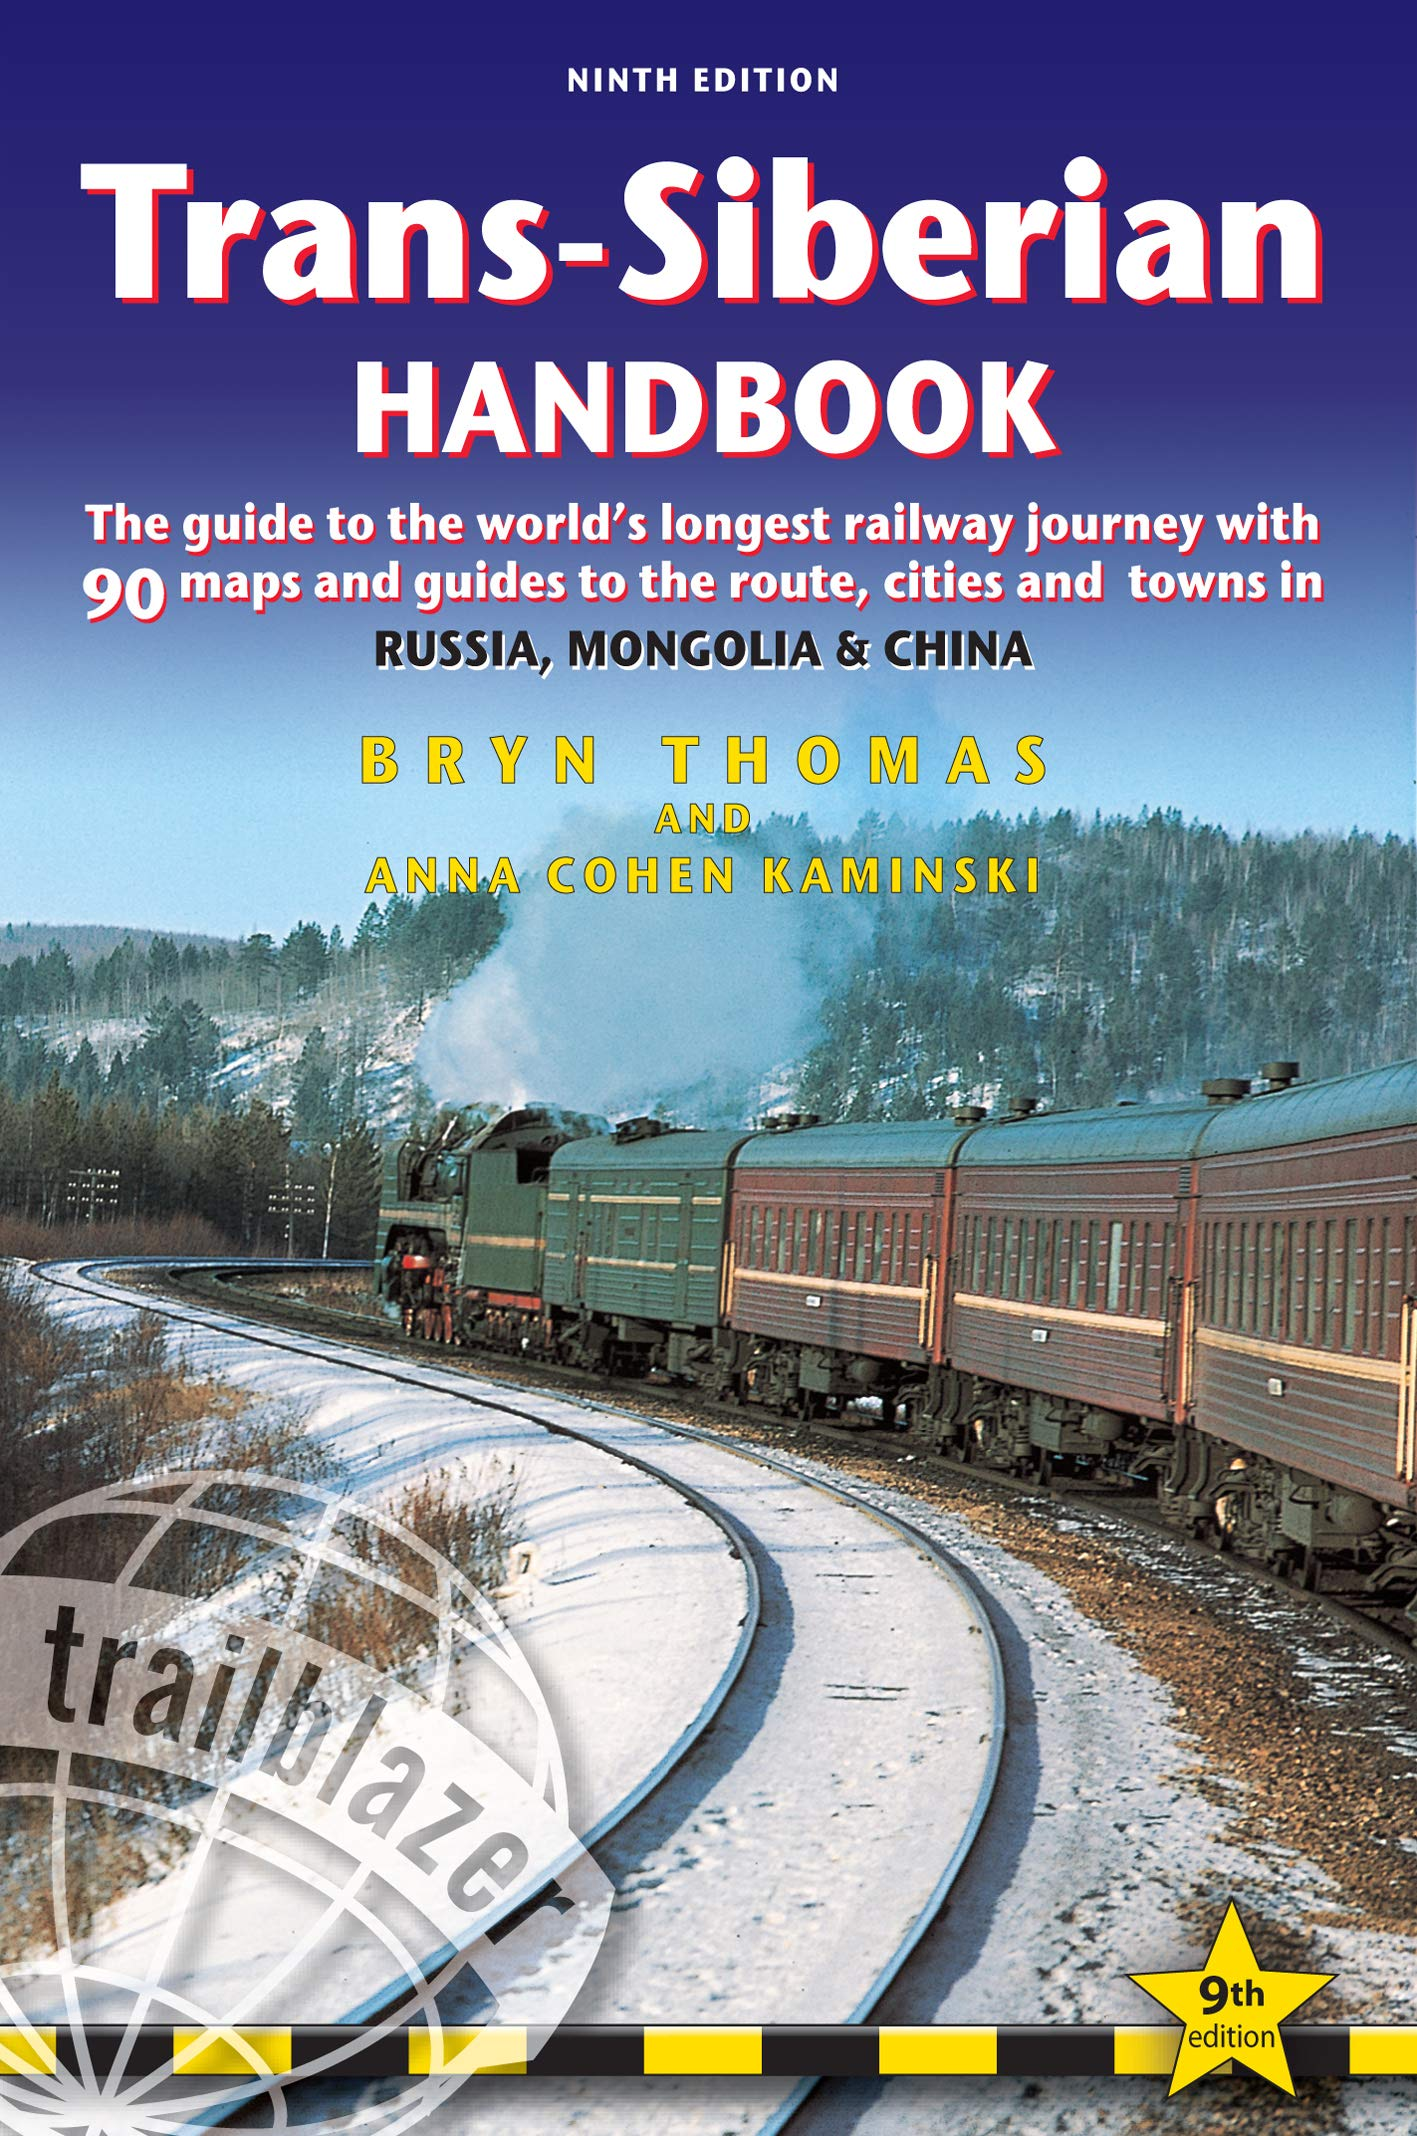 Trans-Siberian Handbook: The guide to the world's longest ... on northern europe map, bosnia map, south america map, baikal amur mainline, wales map, st thomas map, arctic ocean map, trans-siberian railway panorama, west siberian railway, brazil map, republic of georgia map, india map, orient express, cyprus map, central asia map, south africa map, central europe map, saint petersburg, ural mountains map, west africa map, greenland map, moscow map, caribbean cruise map, caucasus mountains map, russia map,